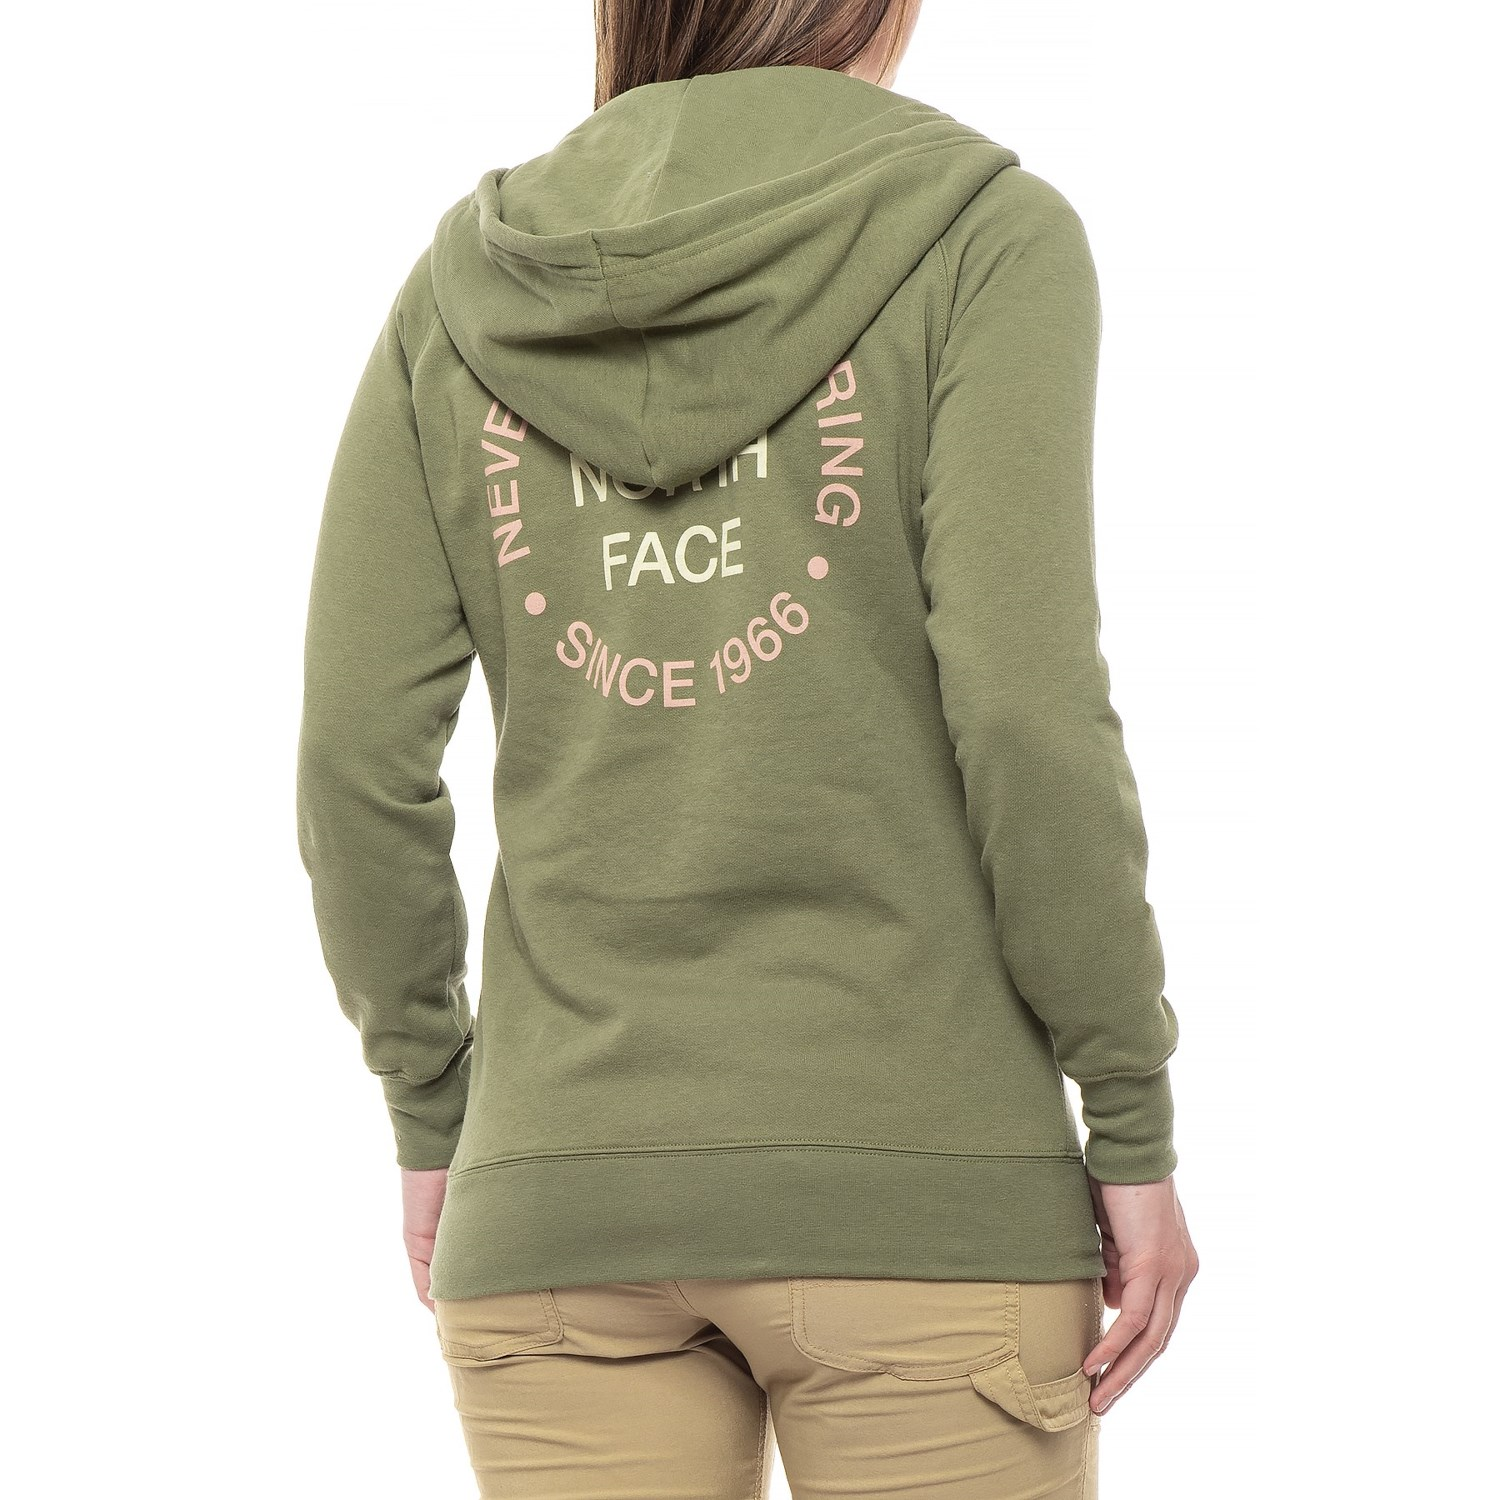 5cded8662259 The North Face Have You Herd Hoodie - Zip Front (For Women)